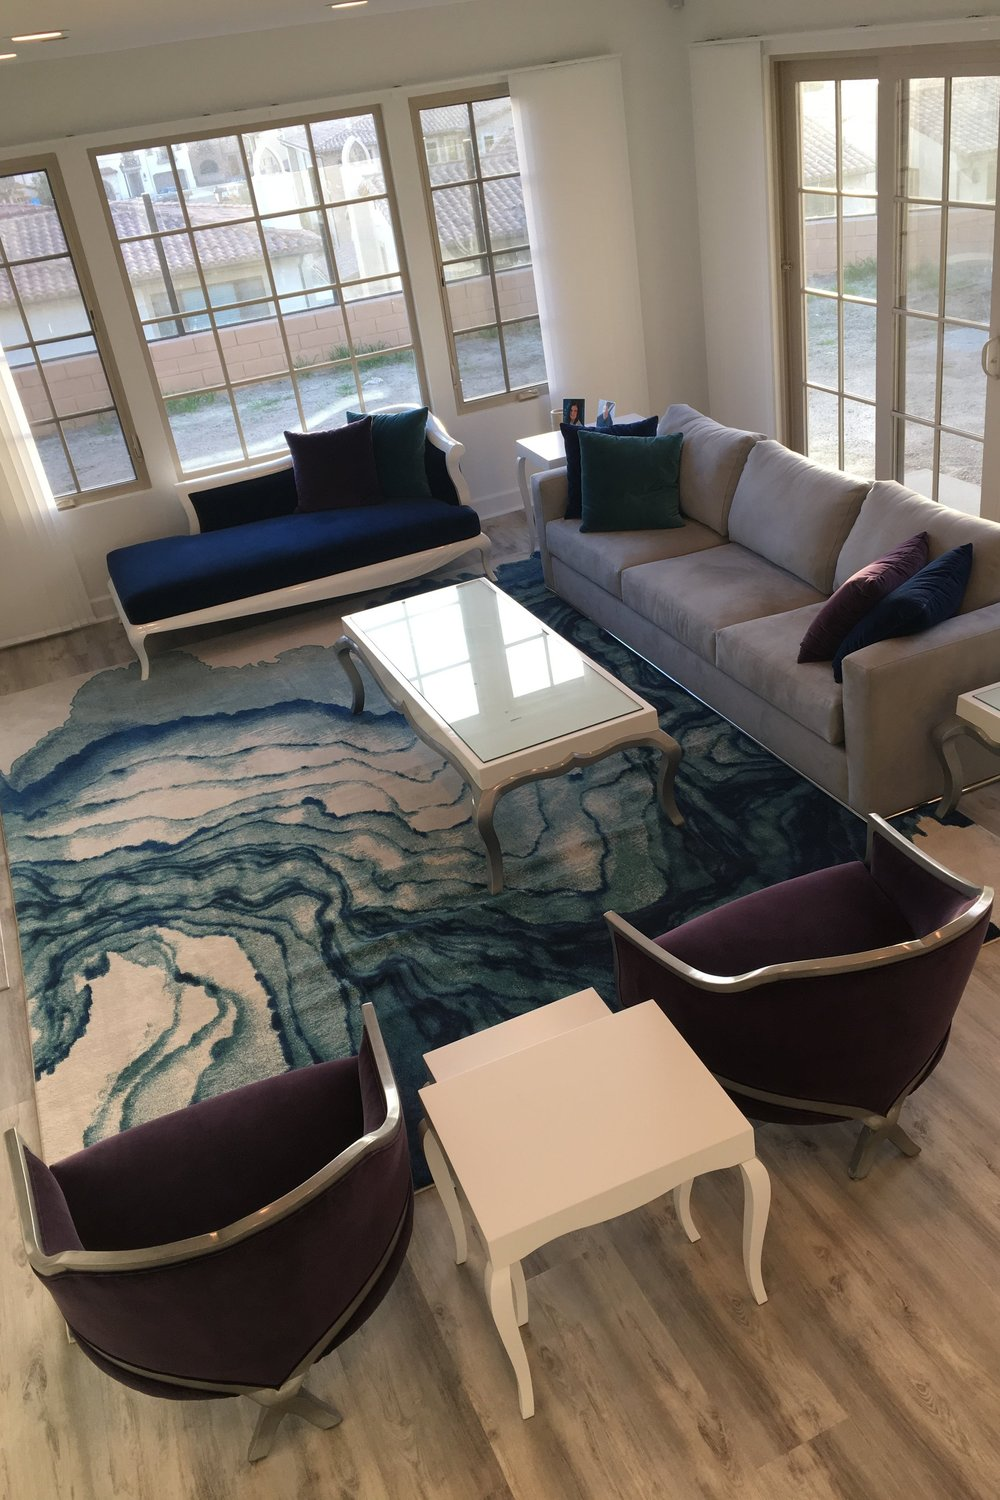 DESIGN - Complete Home FurnishingsPaint SelectionFlooring, Walls, and Countertop SelectionWindow TreatmentsPillows and Bedding SelectionArtwork SelectionLight Fixtures SelectionAccessories Styling